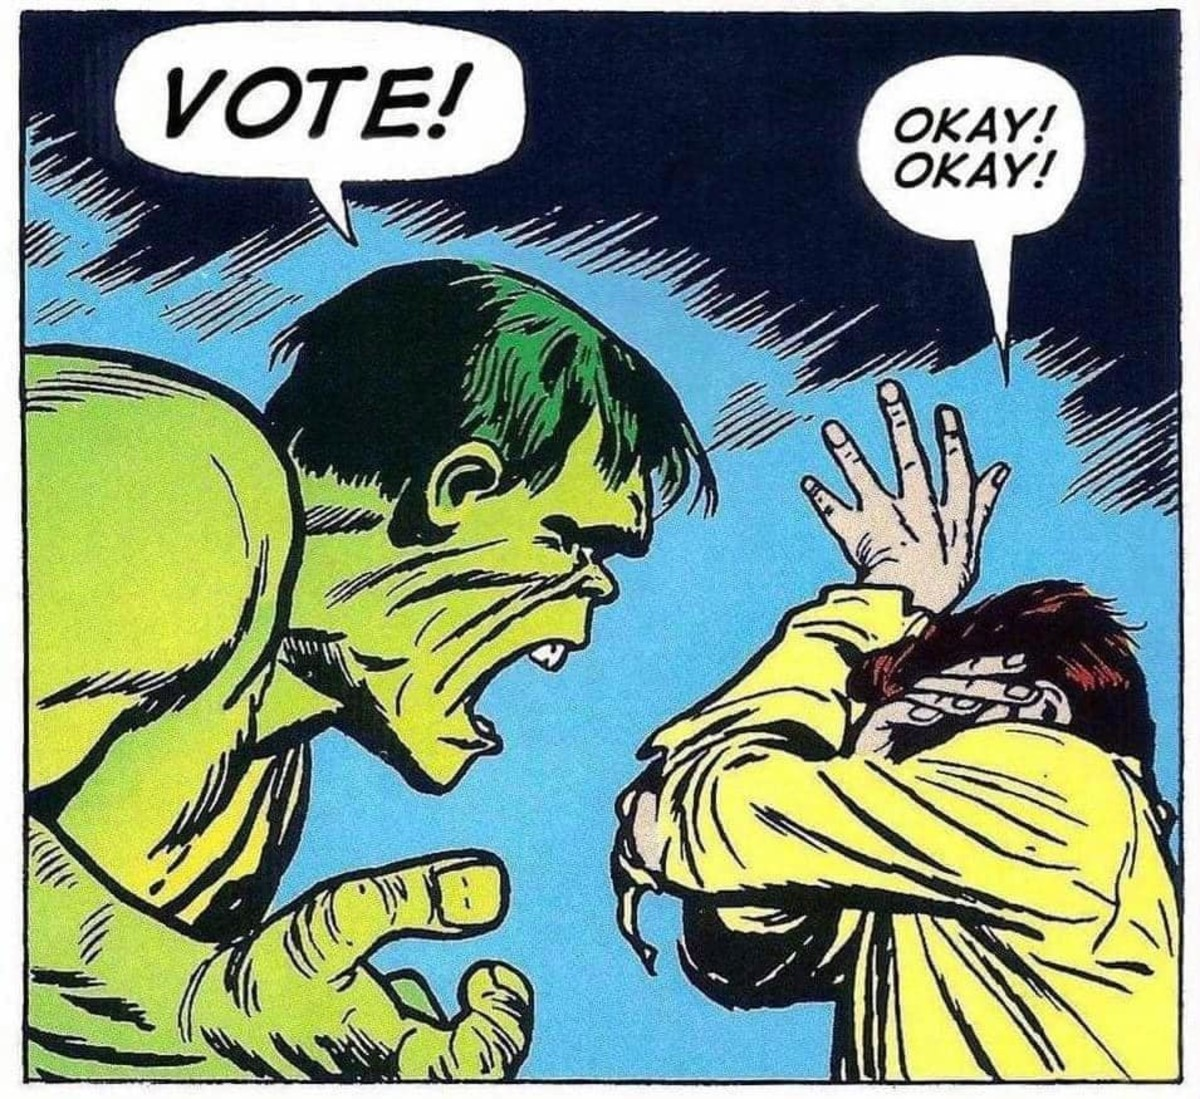 Even the Hulk want's you to vote